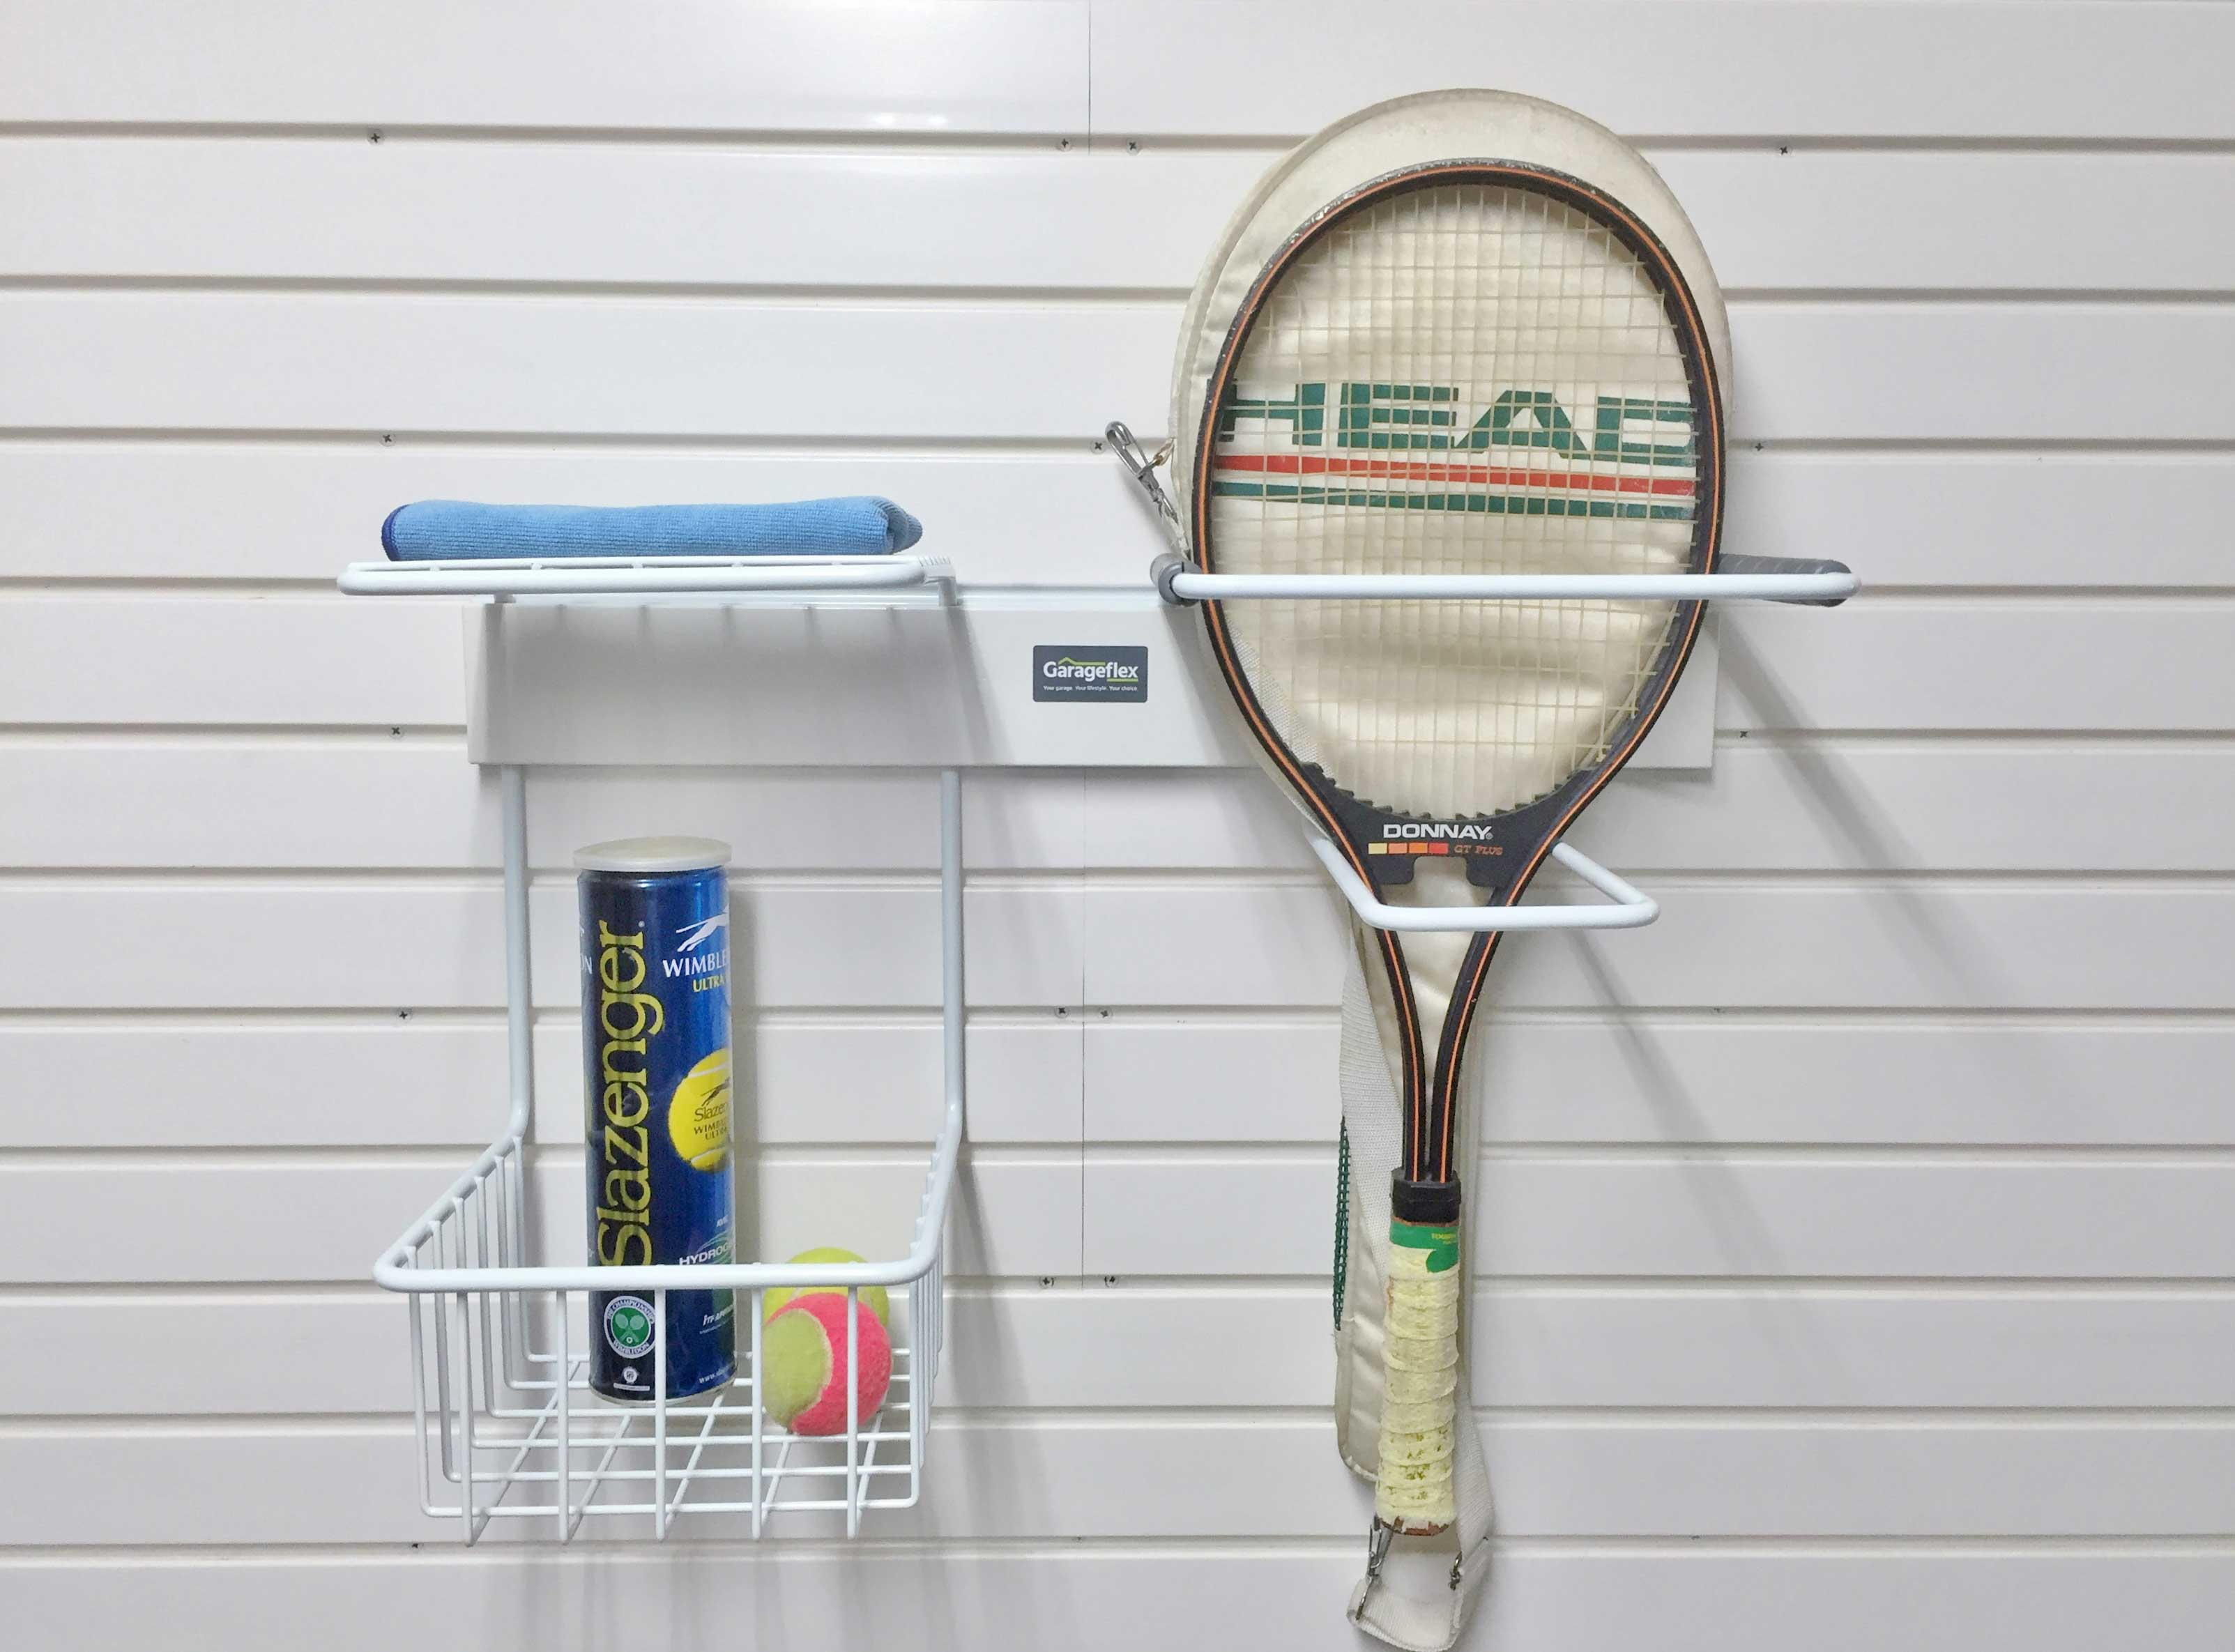 Garage Wall Storage: Tennis Rack storage solution available from Garageflex